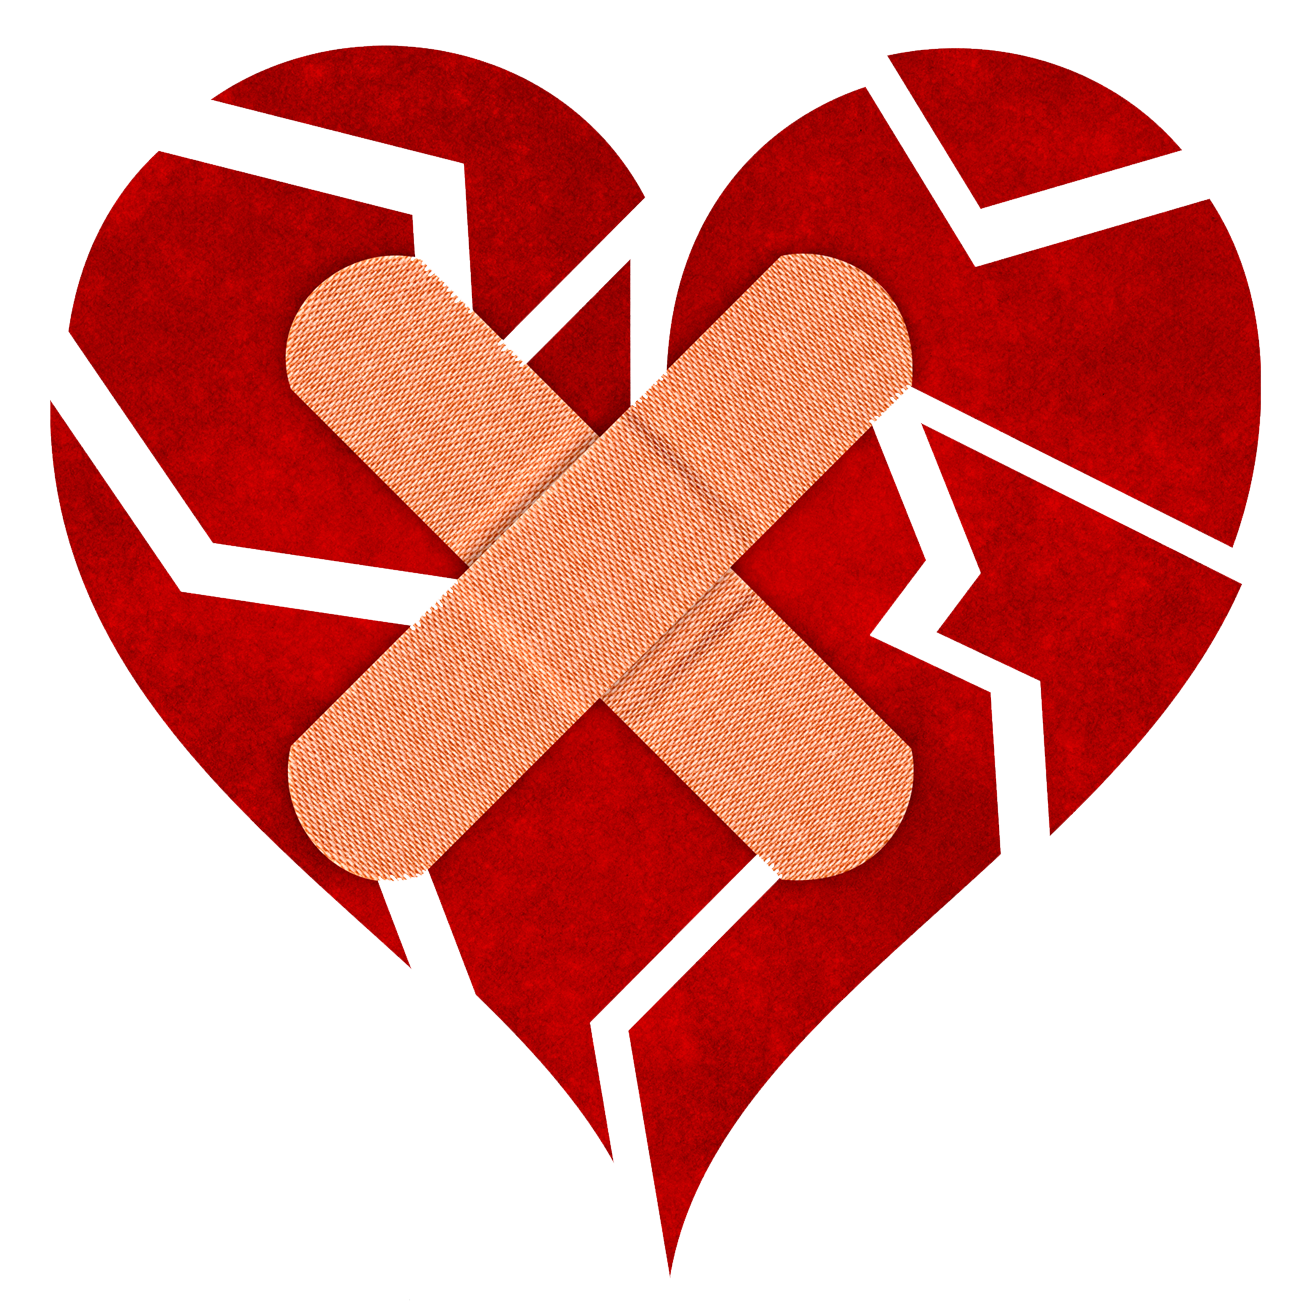 Heart break emoji png. Transparent pictures free icons